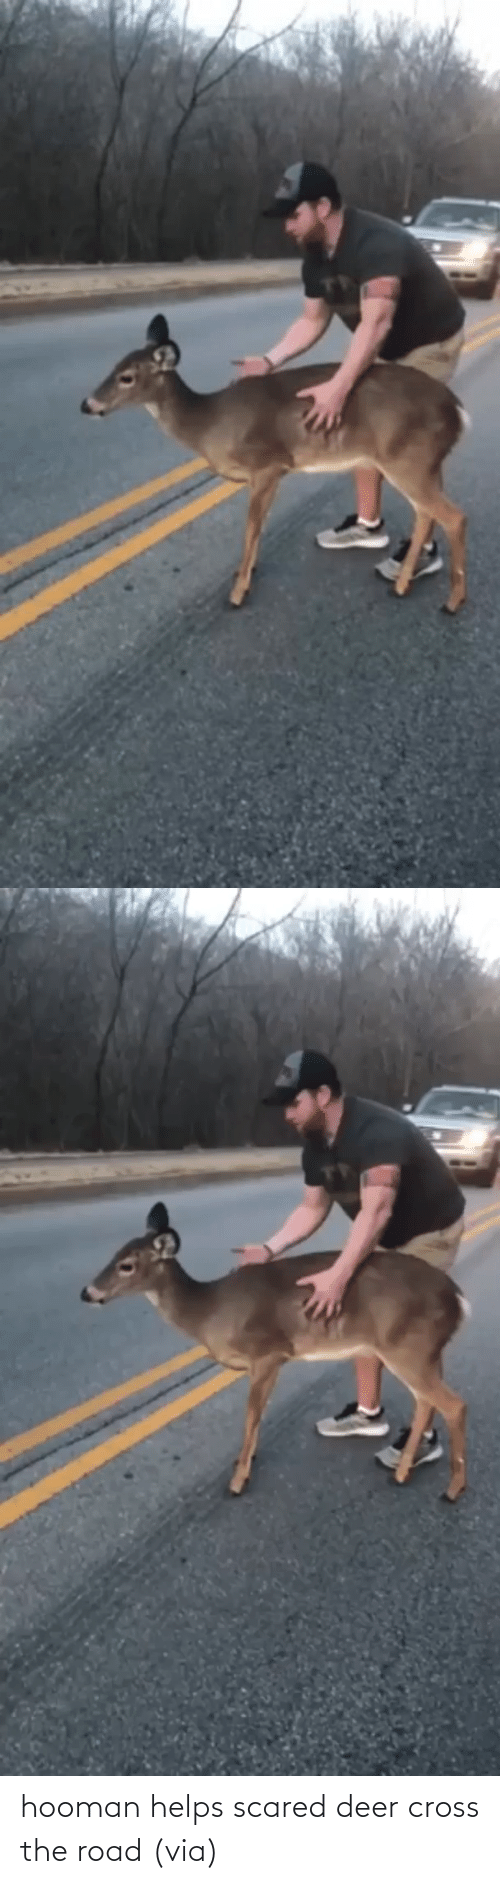 via: hooman helps scared deer cross the road (via)